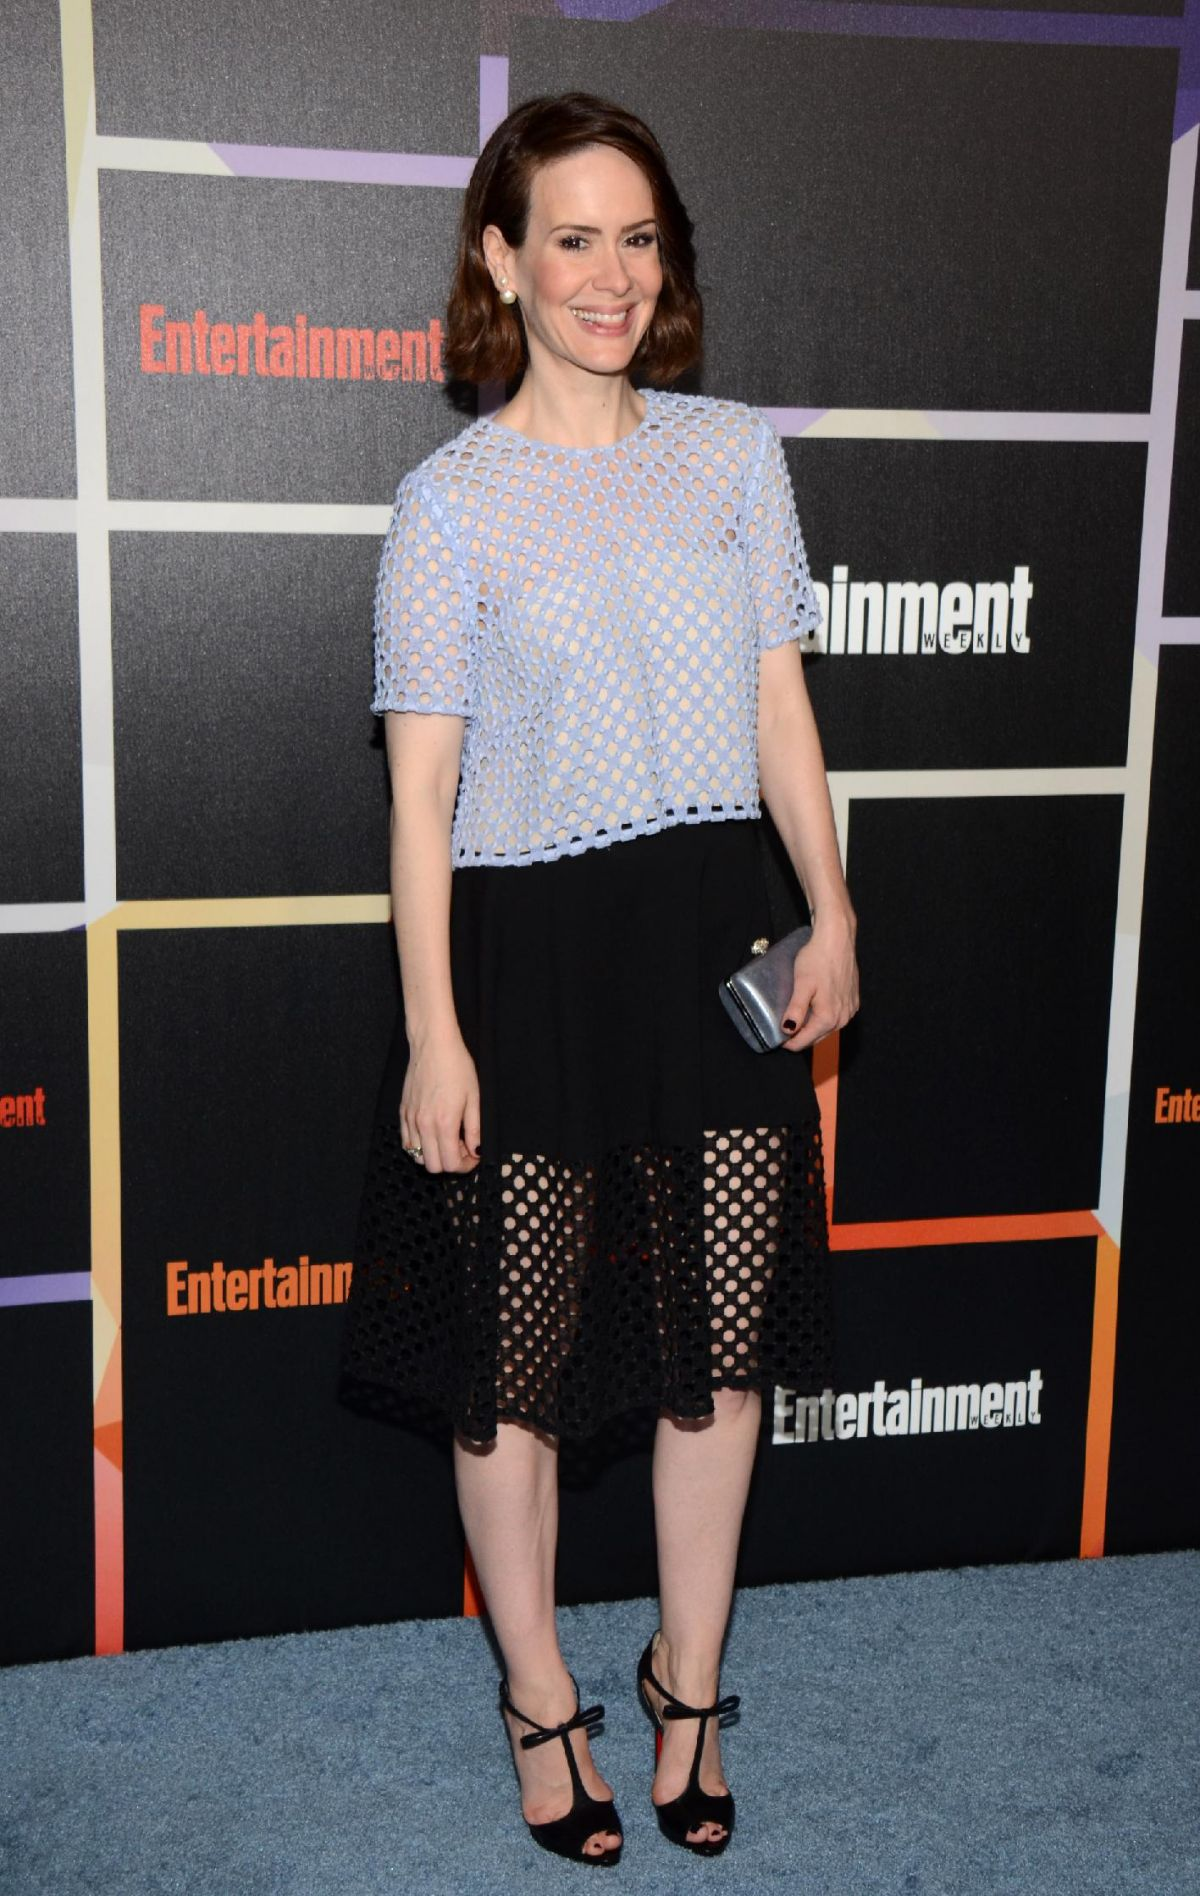 SARAH PAULSON at Entertainment Weekly's Comic-con Celebration